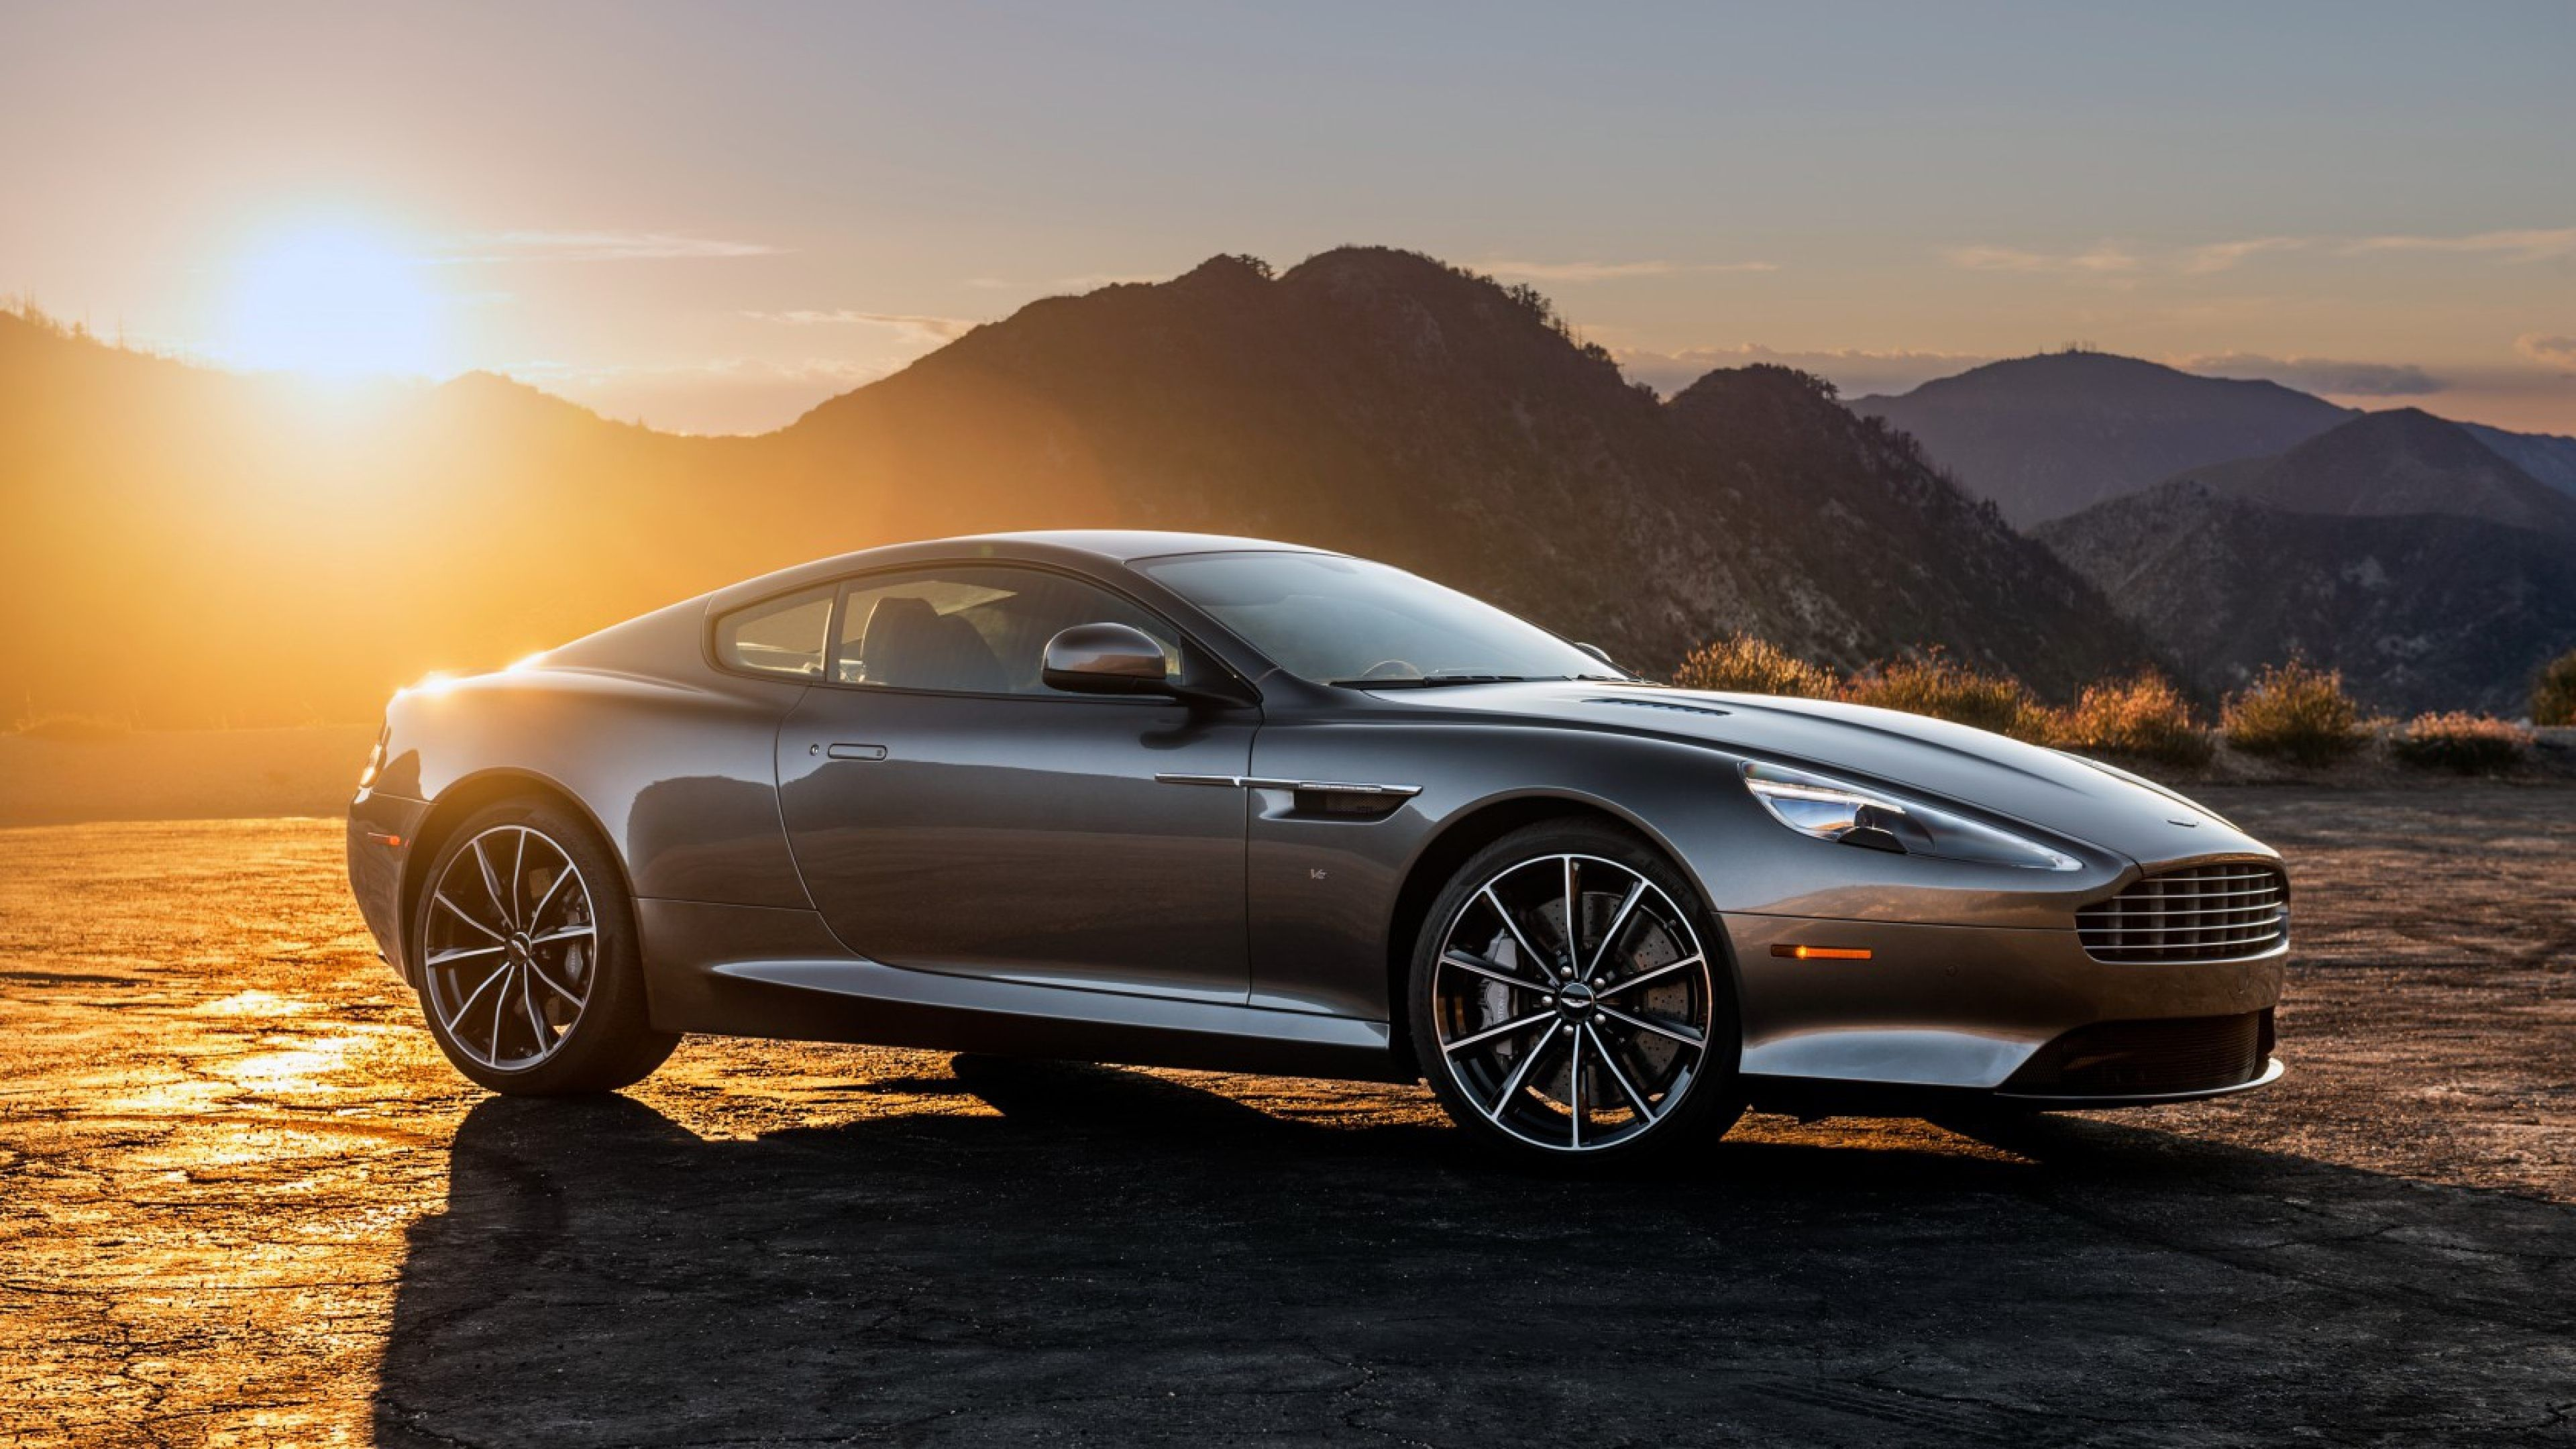 db9 aston martin car 4k ultra hd wallpaper | ololoshenka | pinterest